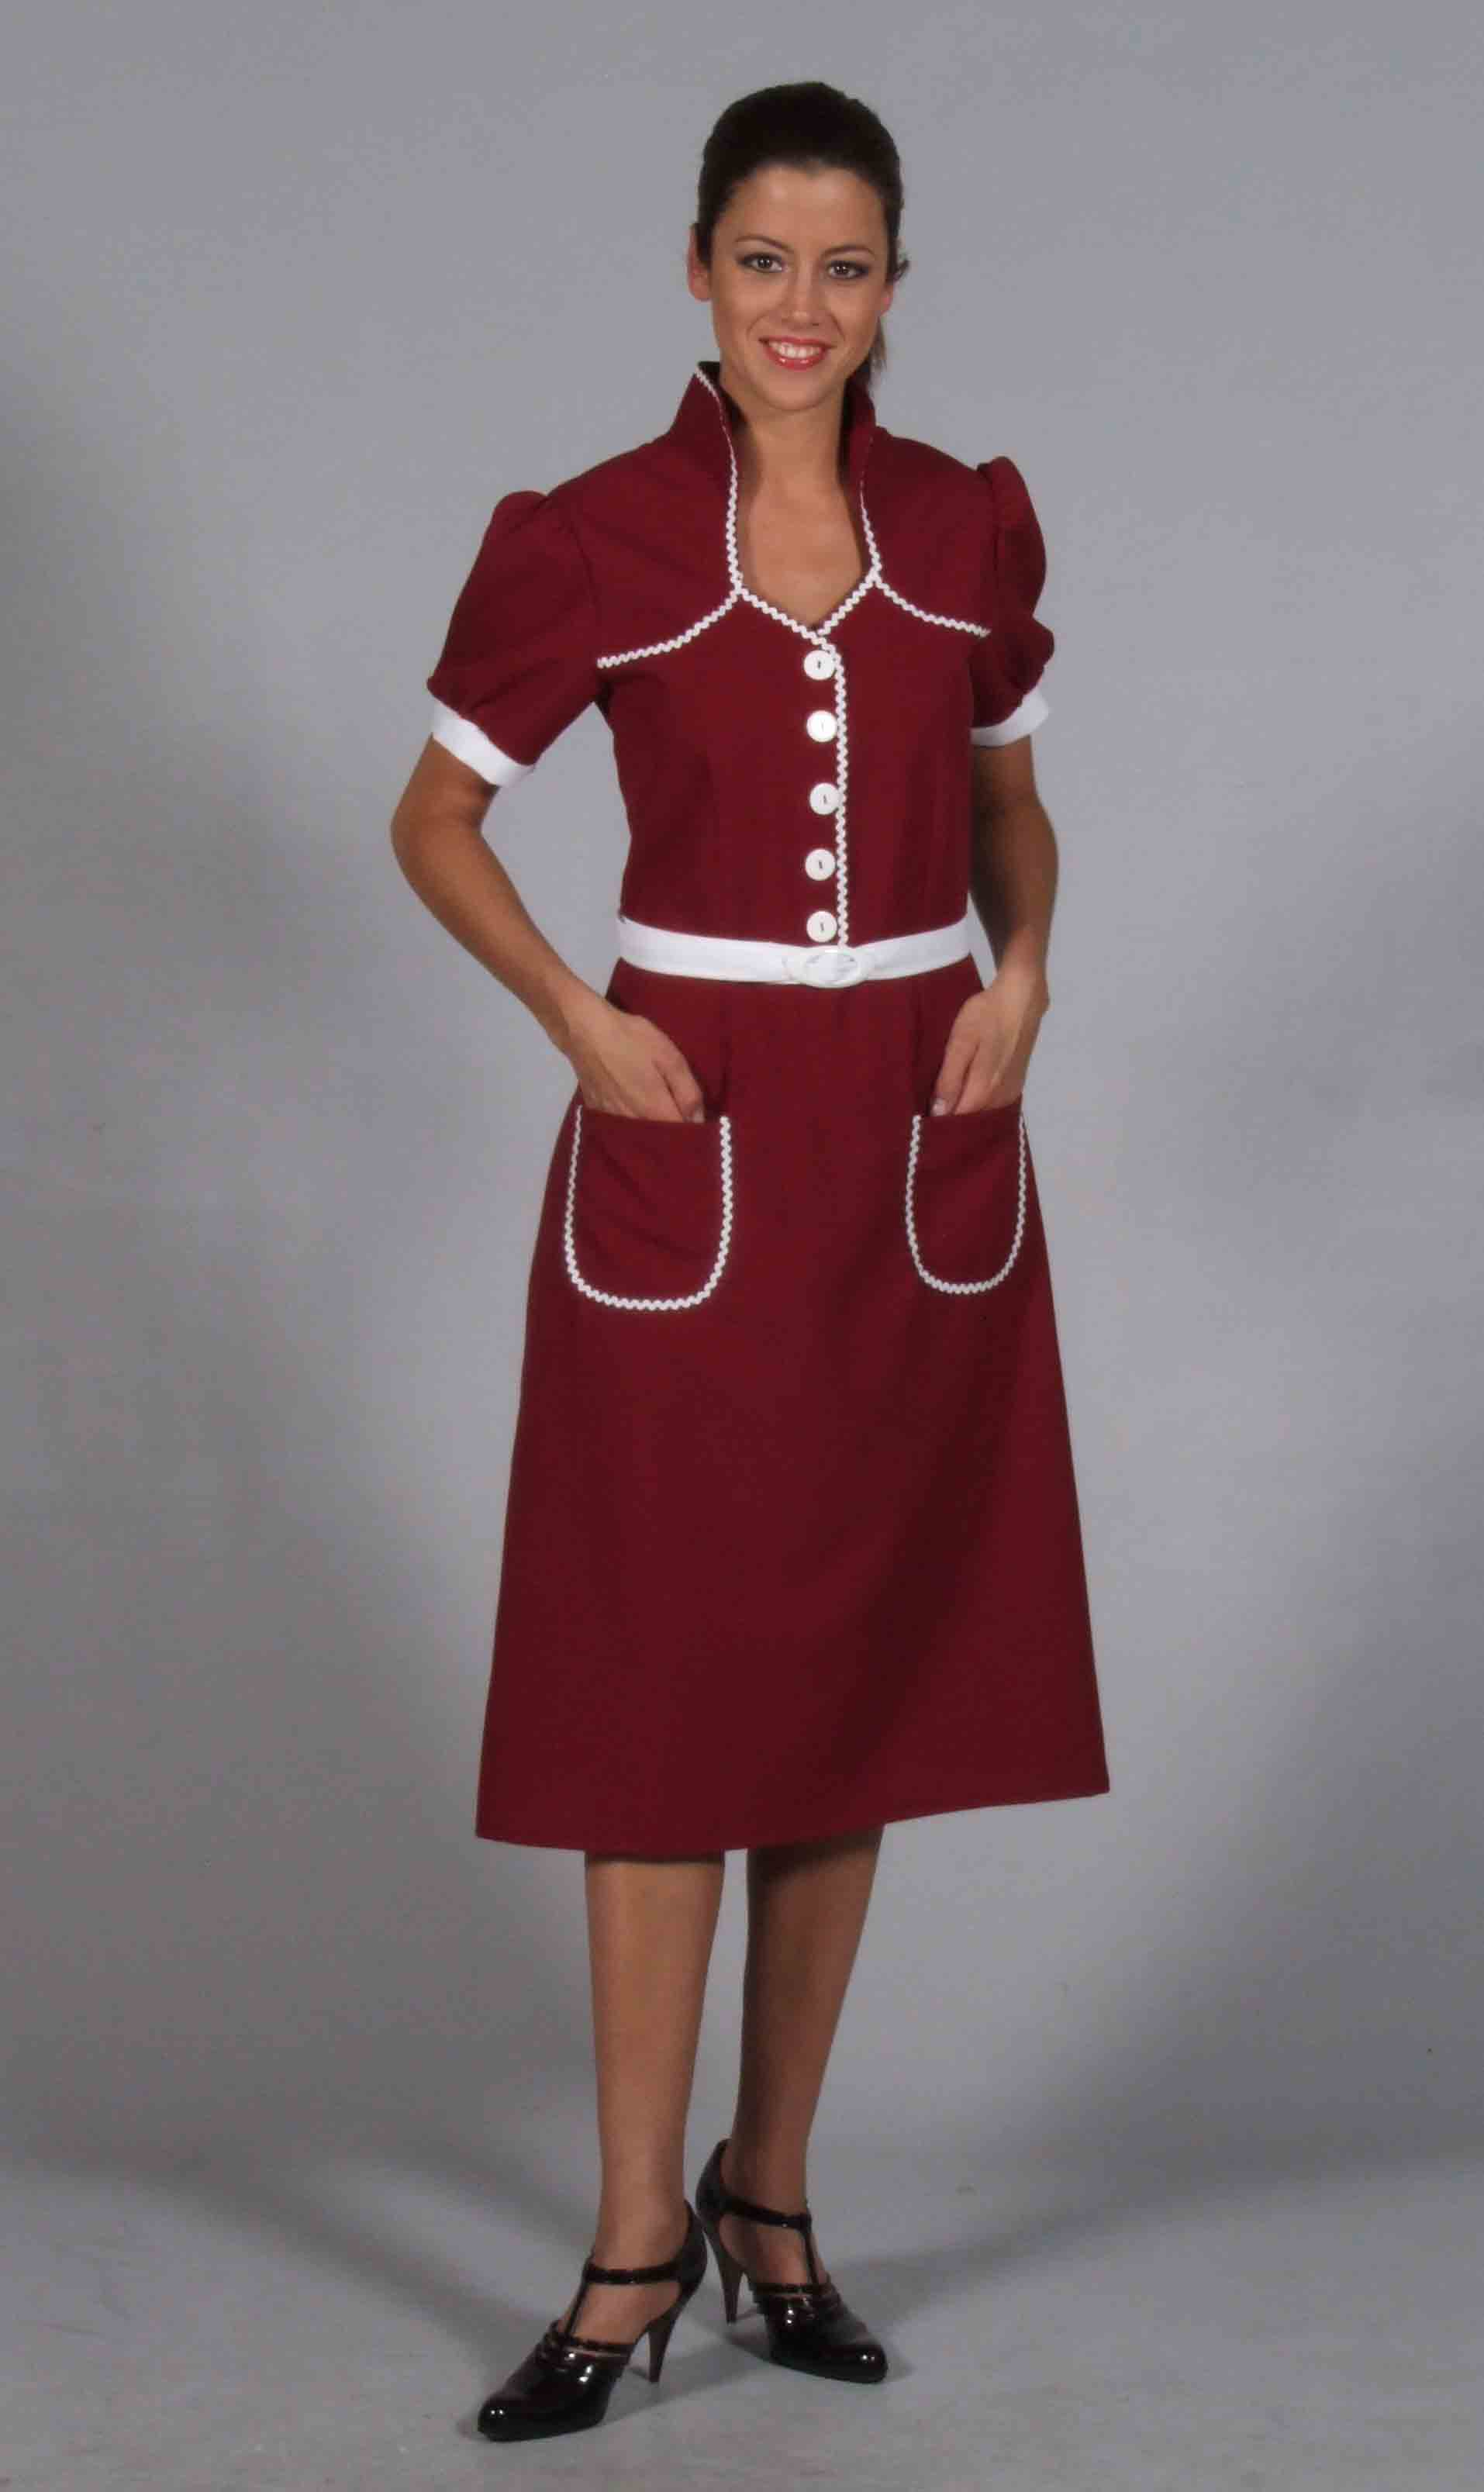 1940s utility dress for hire